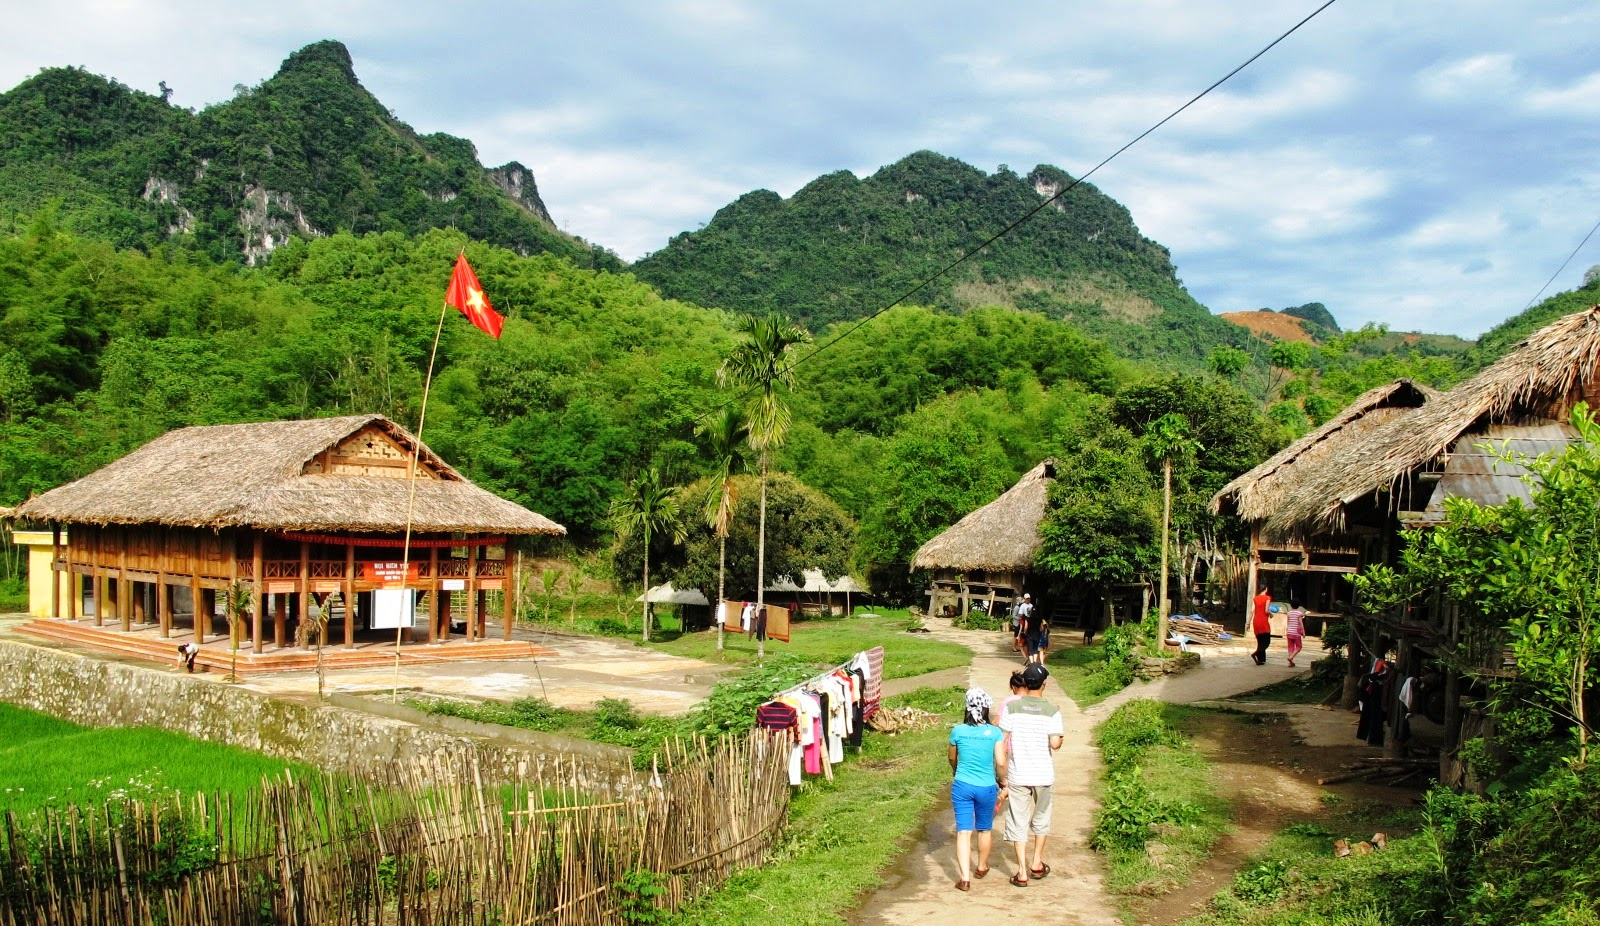 Lac Village in Hoa Binh Vietnam